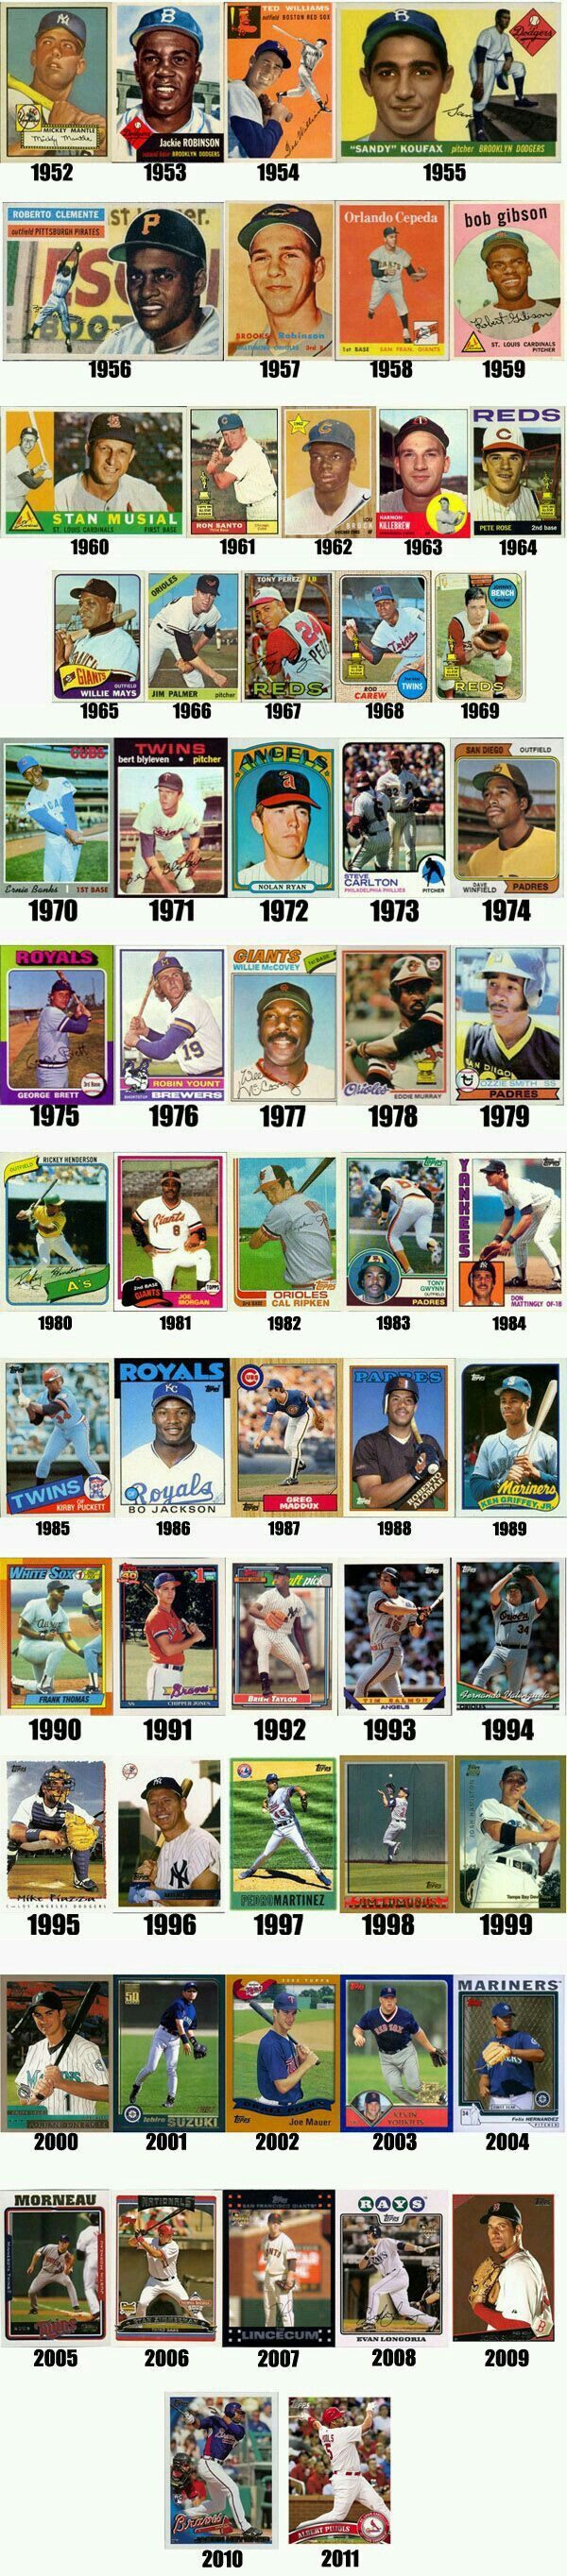 Baseball cards throughout the years